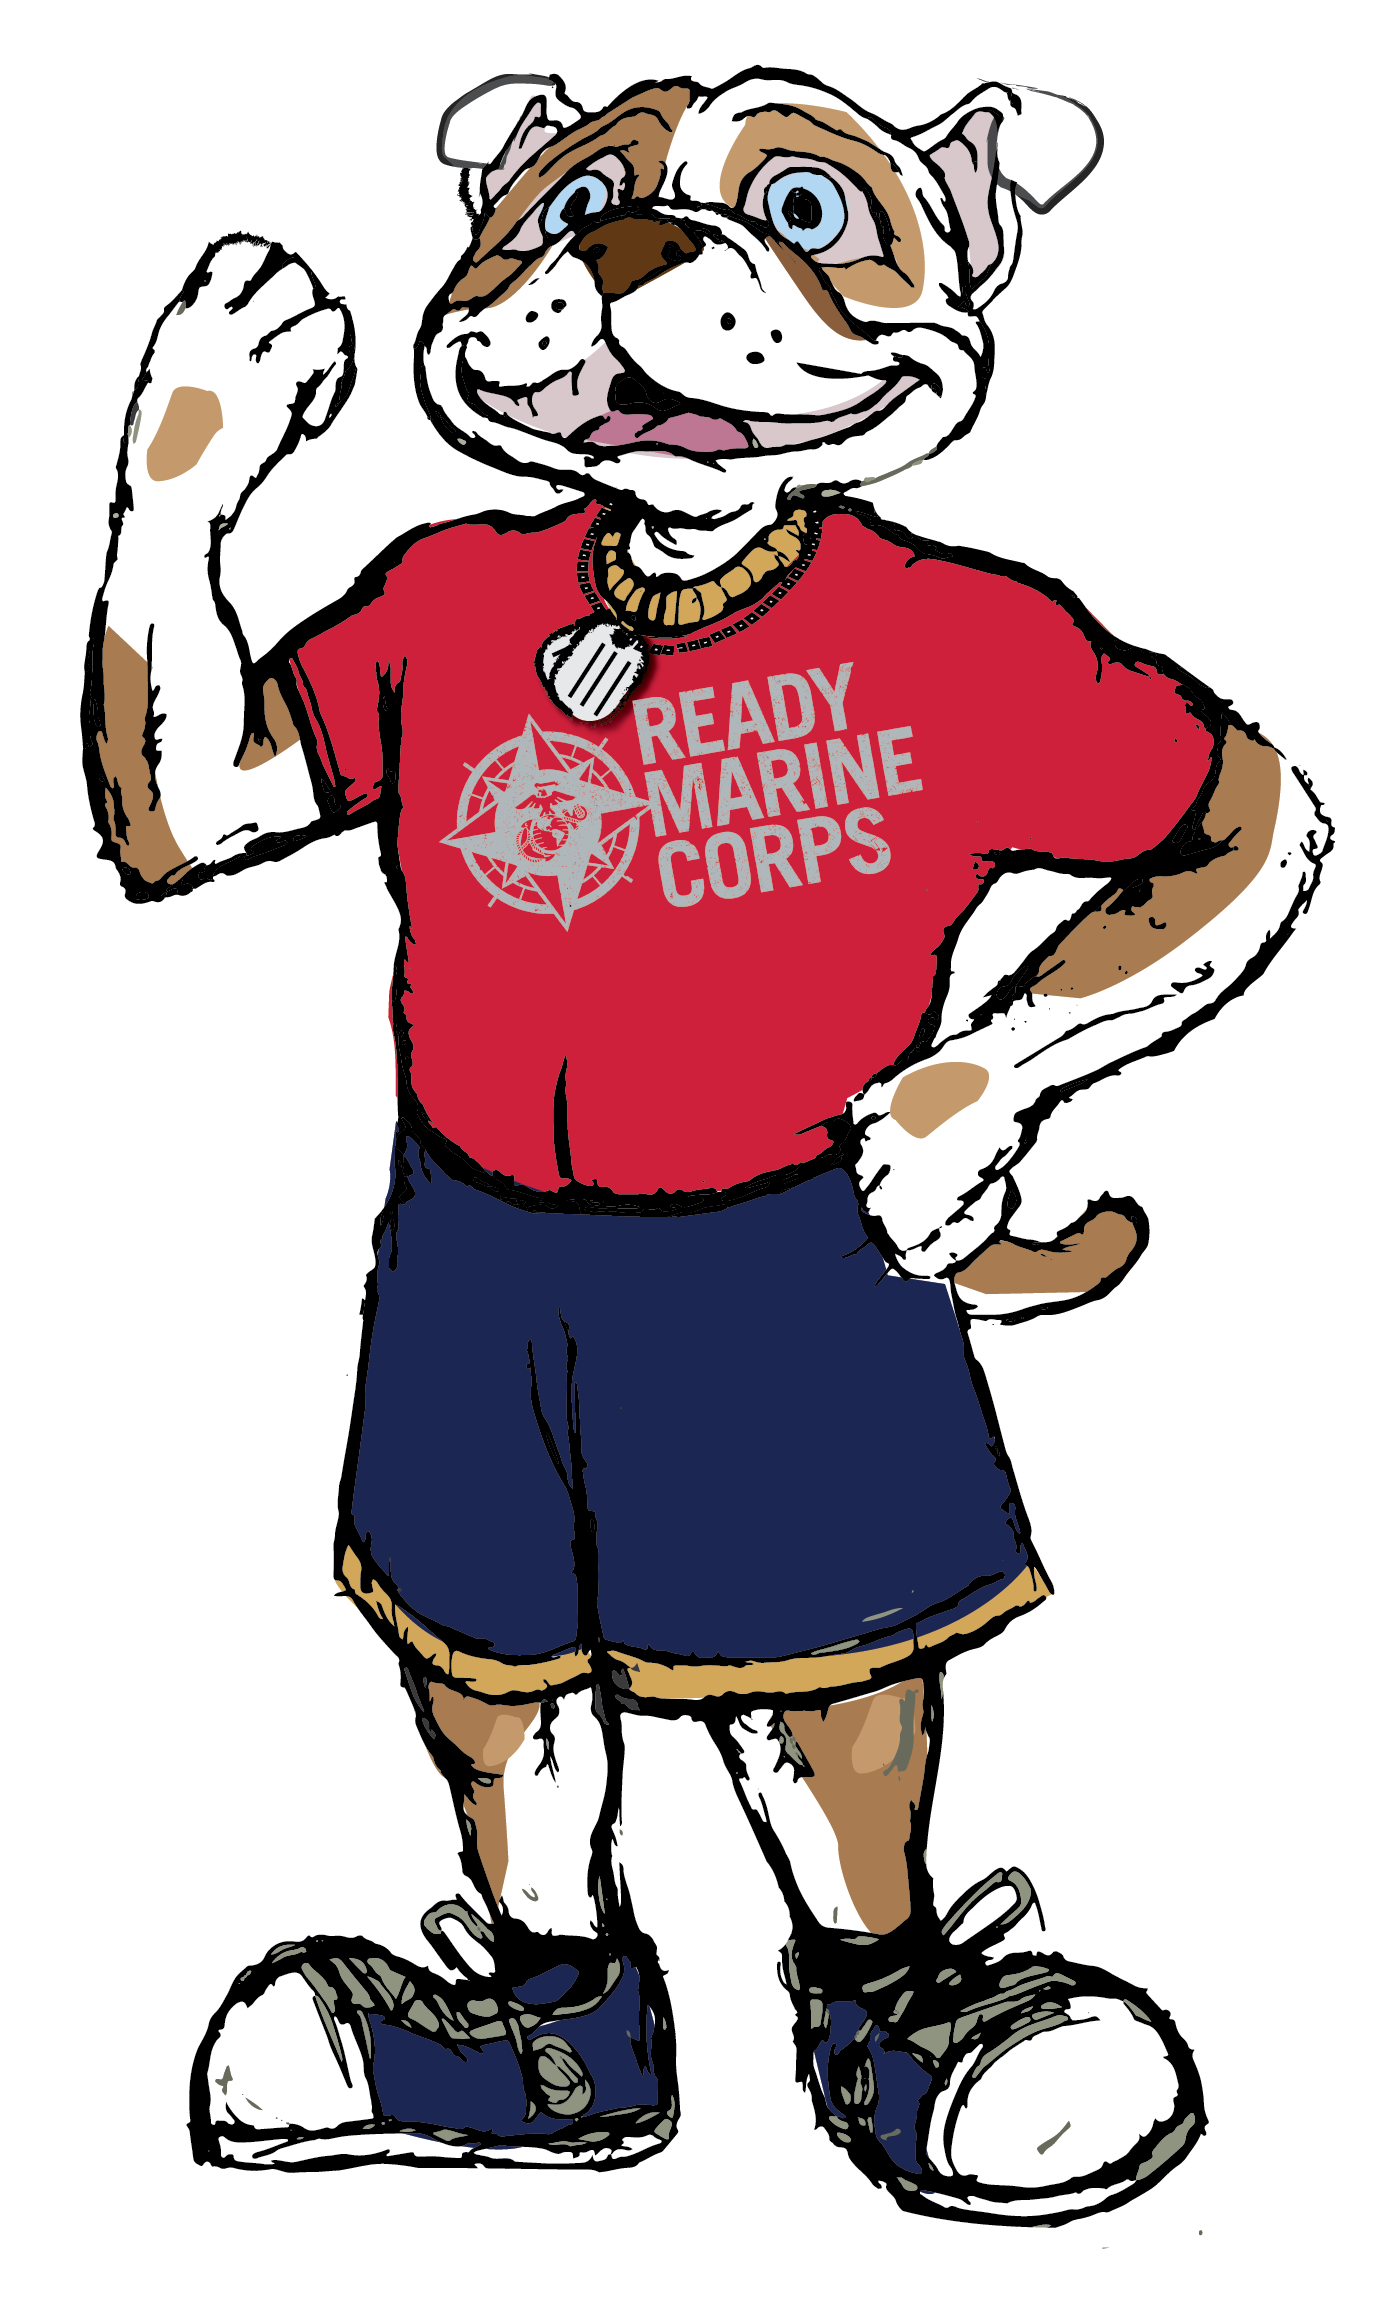 Marine corps cartoons image collections diagram writing sample ready marine corps kids chesty the ready marine corps kids mascot freerunsca image collections sciox Choice Image